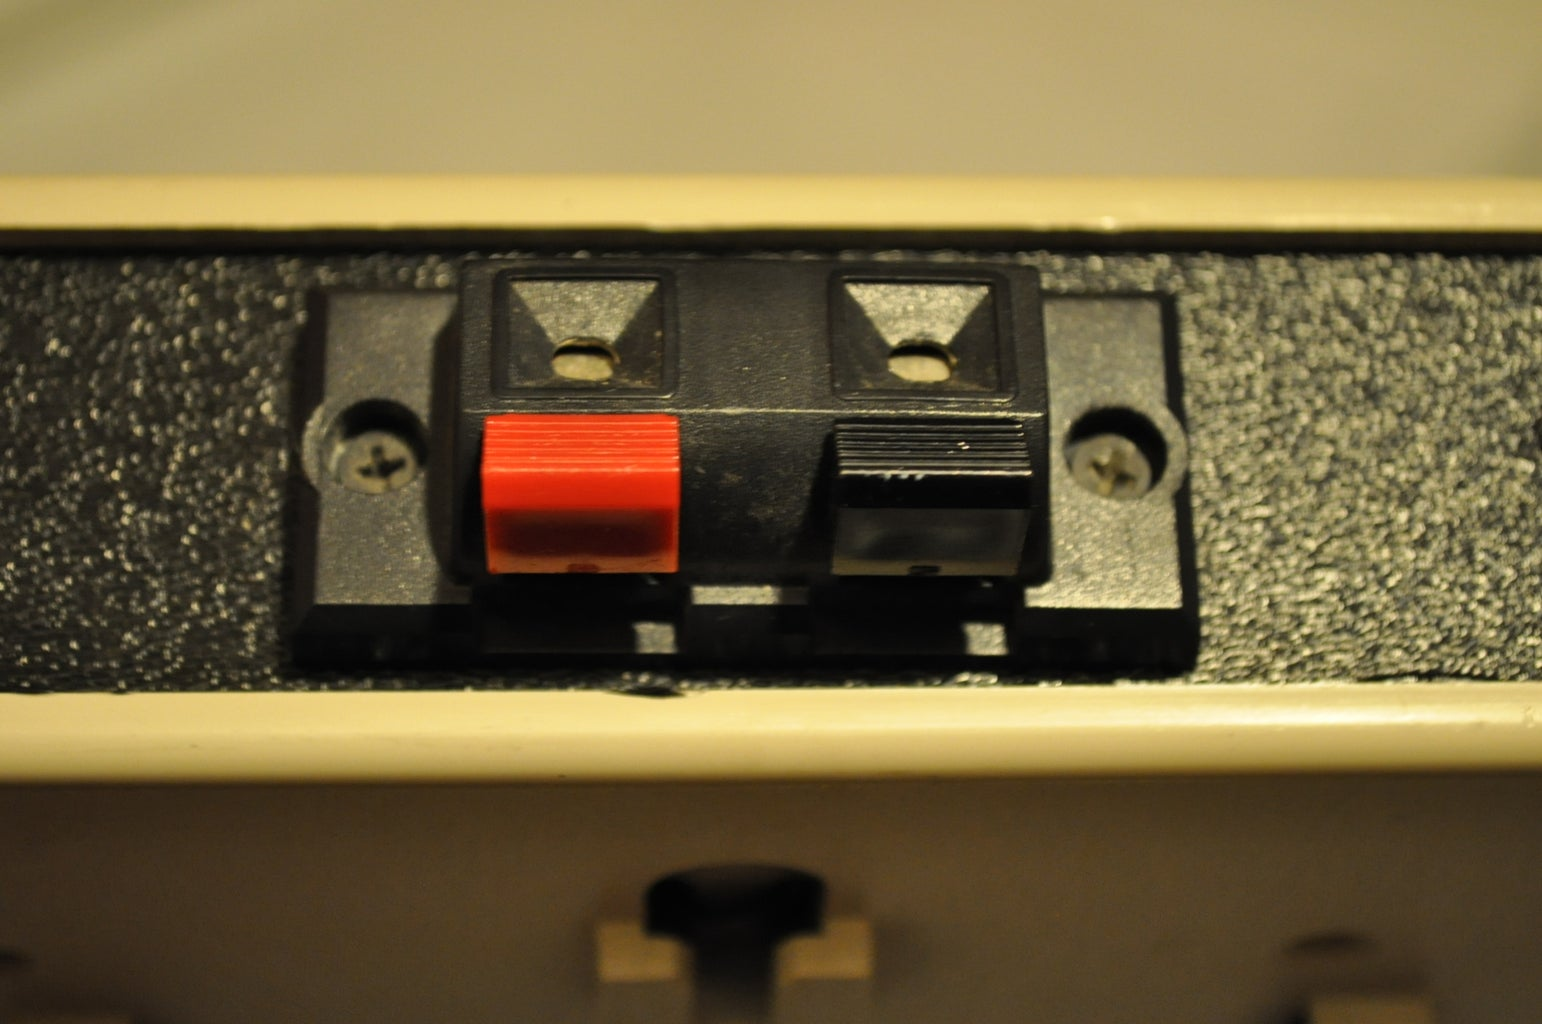 Wiring the Switch and the Speaker Jacks